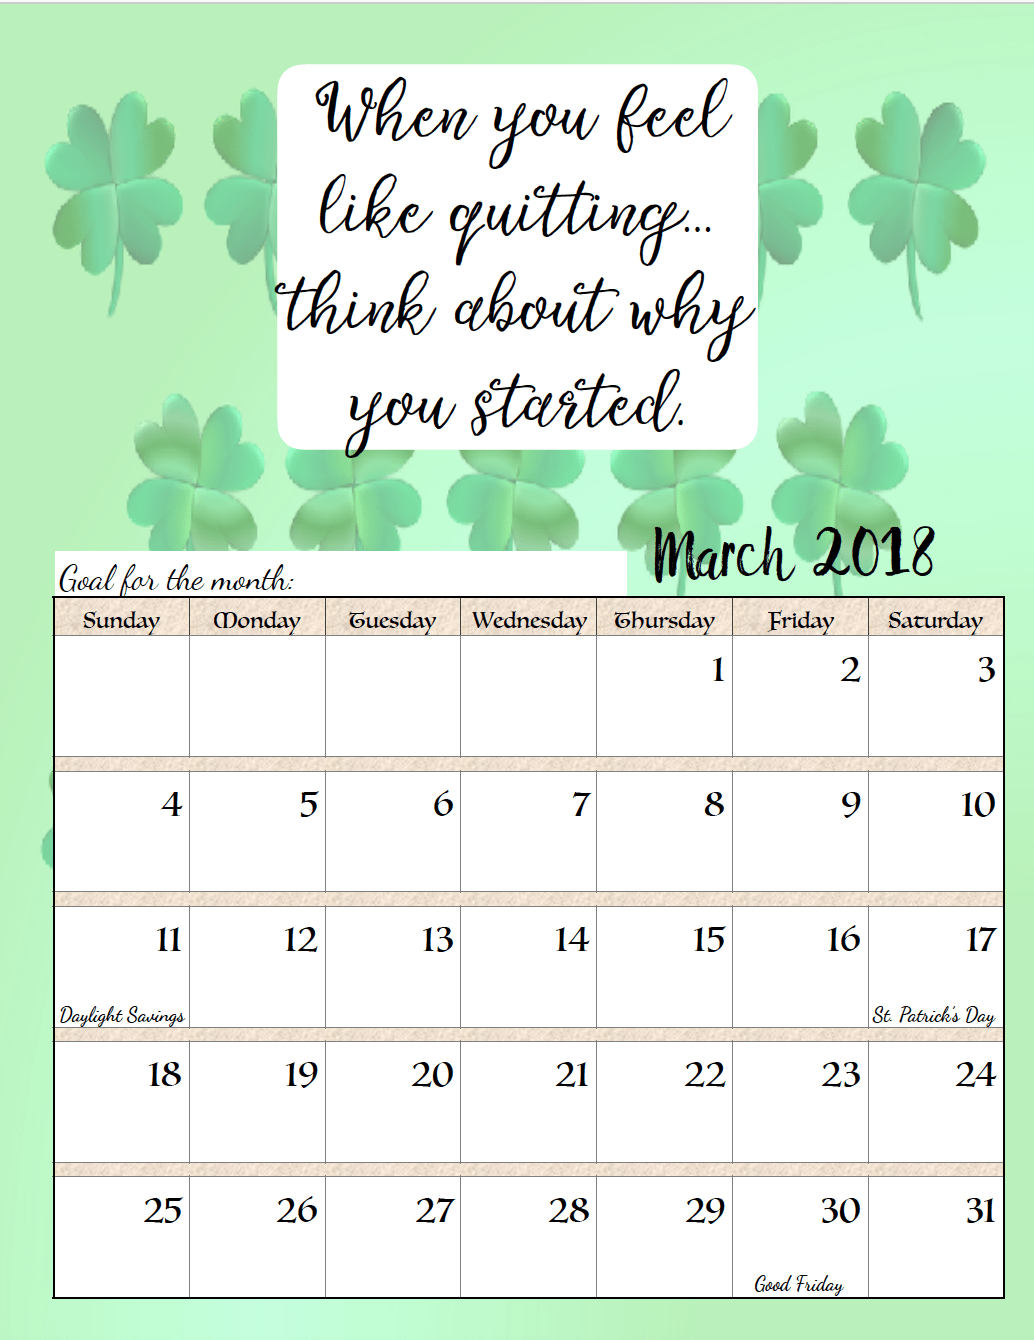 2018 Monthly Calendars With Inspirational, Motivational Inside April Calendar Quotes And Sayings